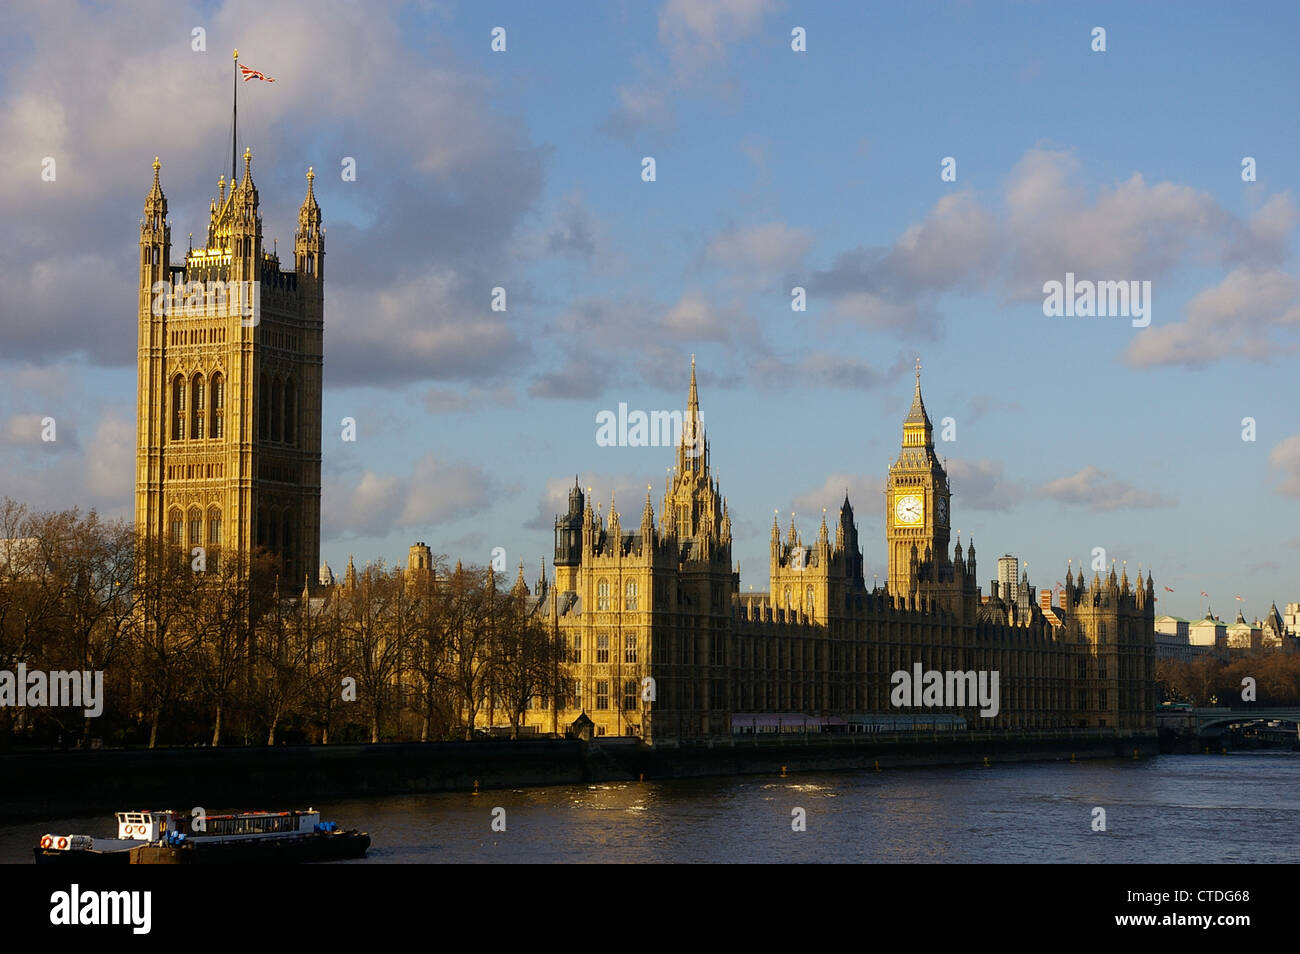 The Palace of Westminster from the River Thames, with Big Ben in the background - Stock Image